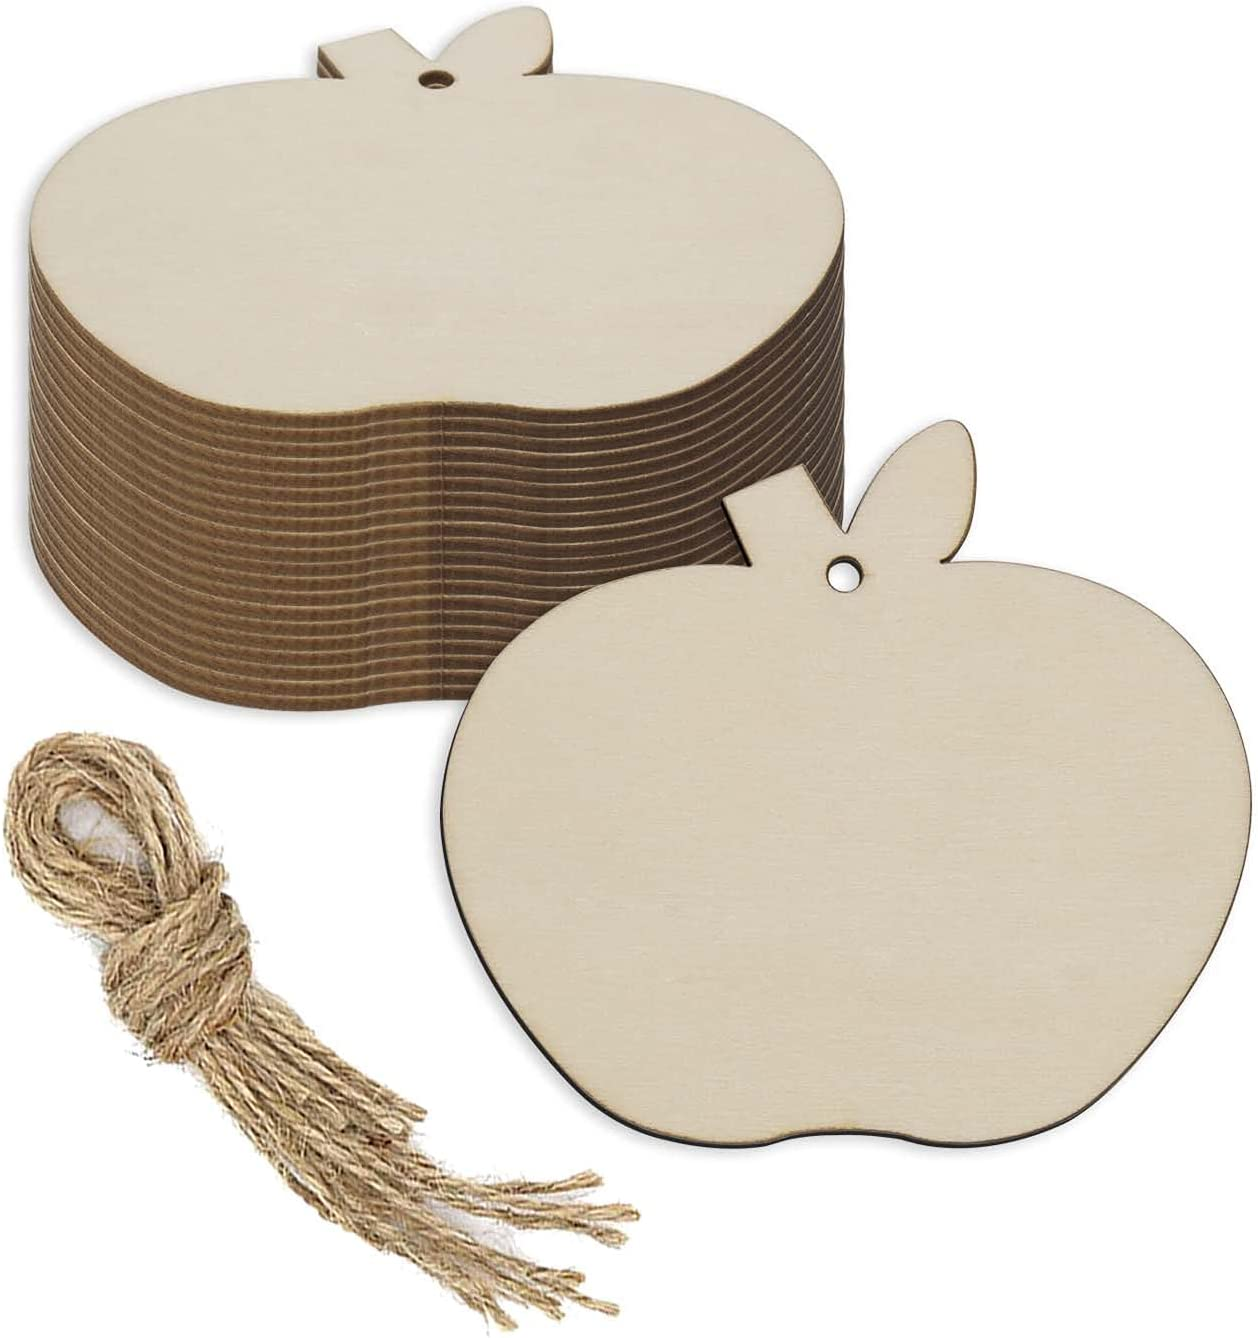 JANOU 20pcs Apple Shape Unfinished Wood Cutouts DIY Crafts Blank Hanging Gift Tags Ornaments with Ropes for Wedding Birthday Christmas Party Decoration, 3.94x3.54 in